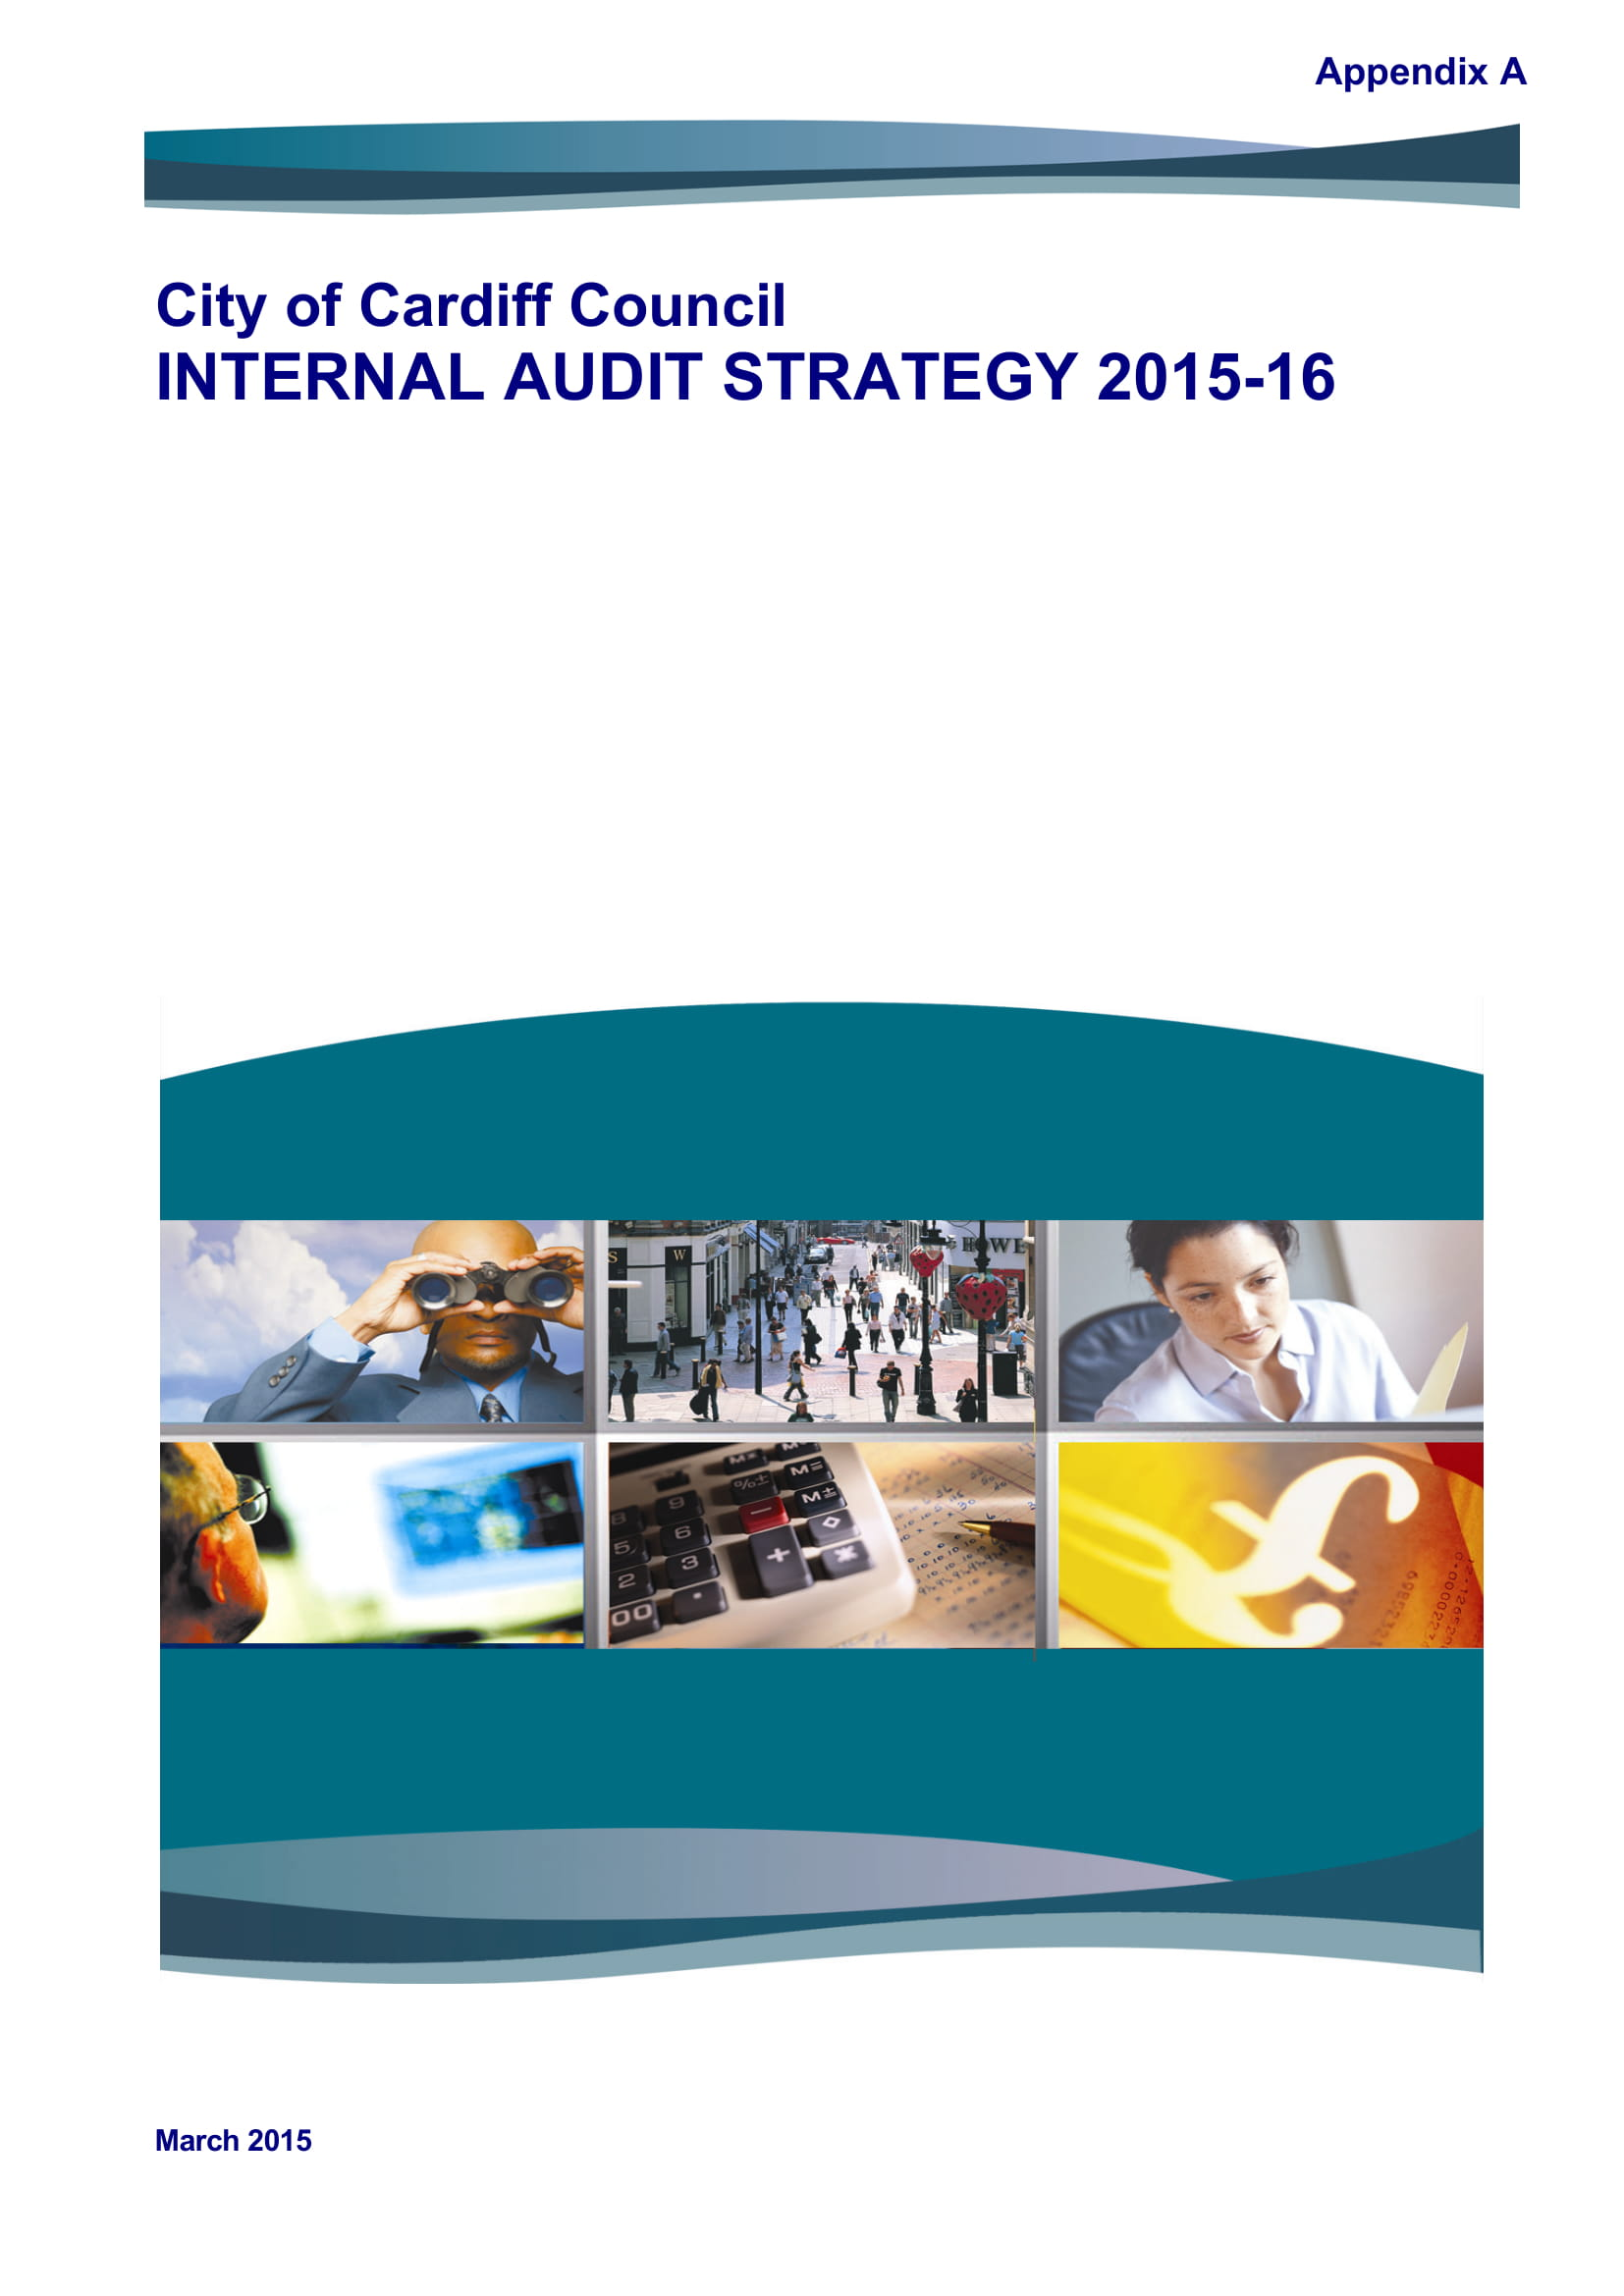 internal audit strategy and swot analysis example